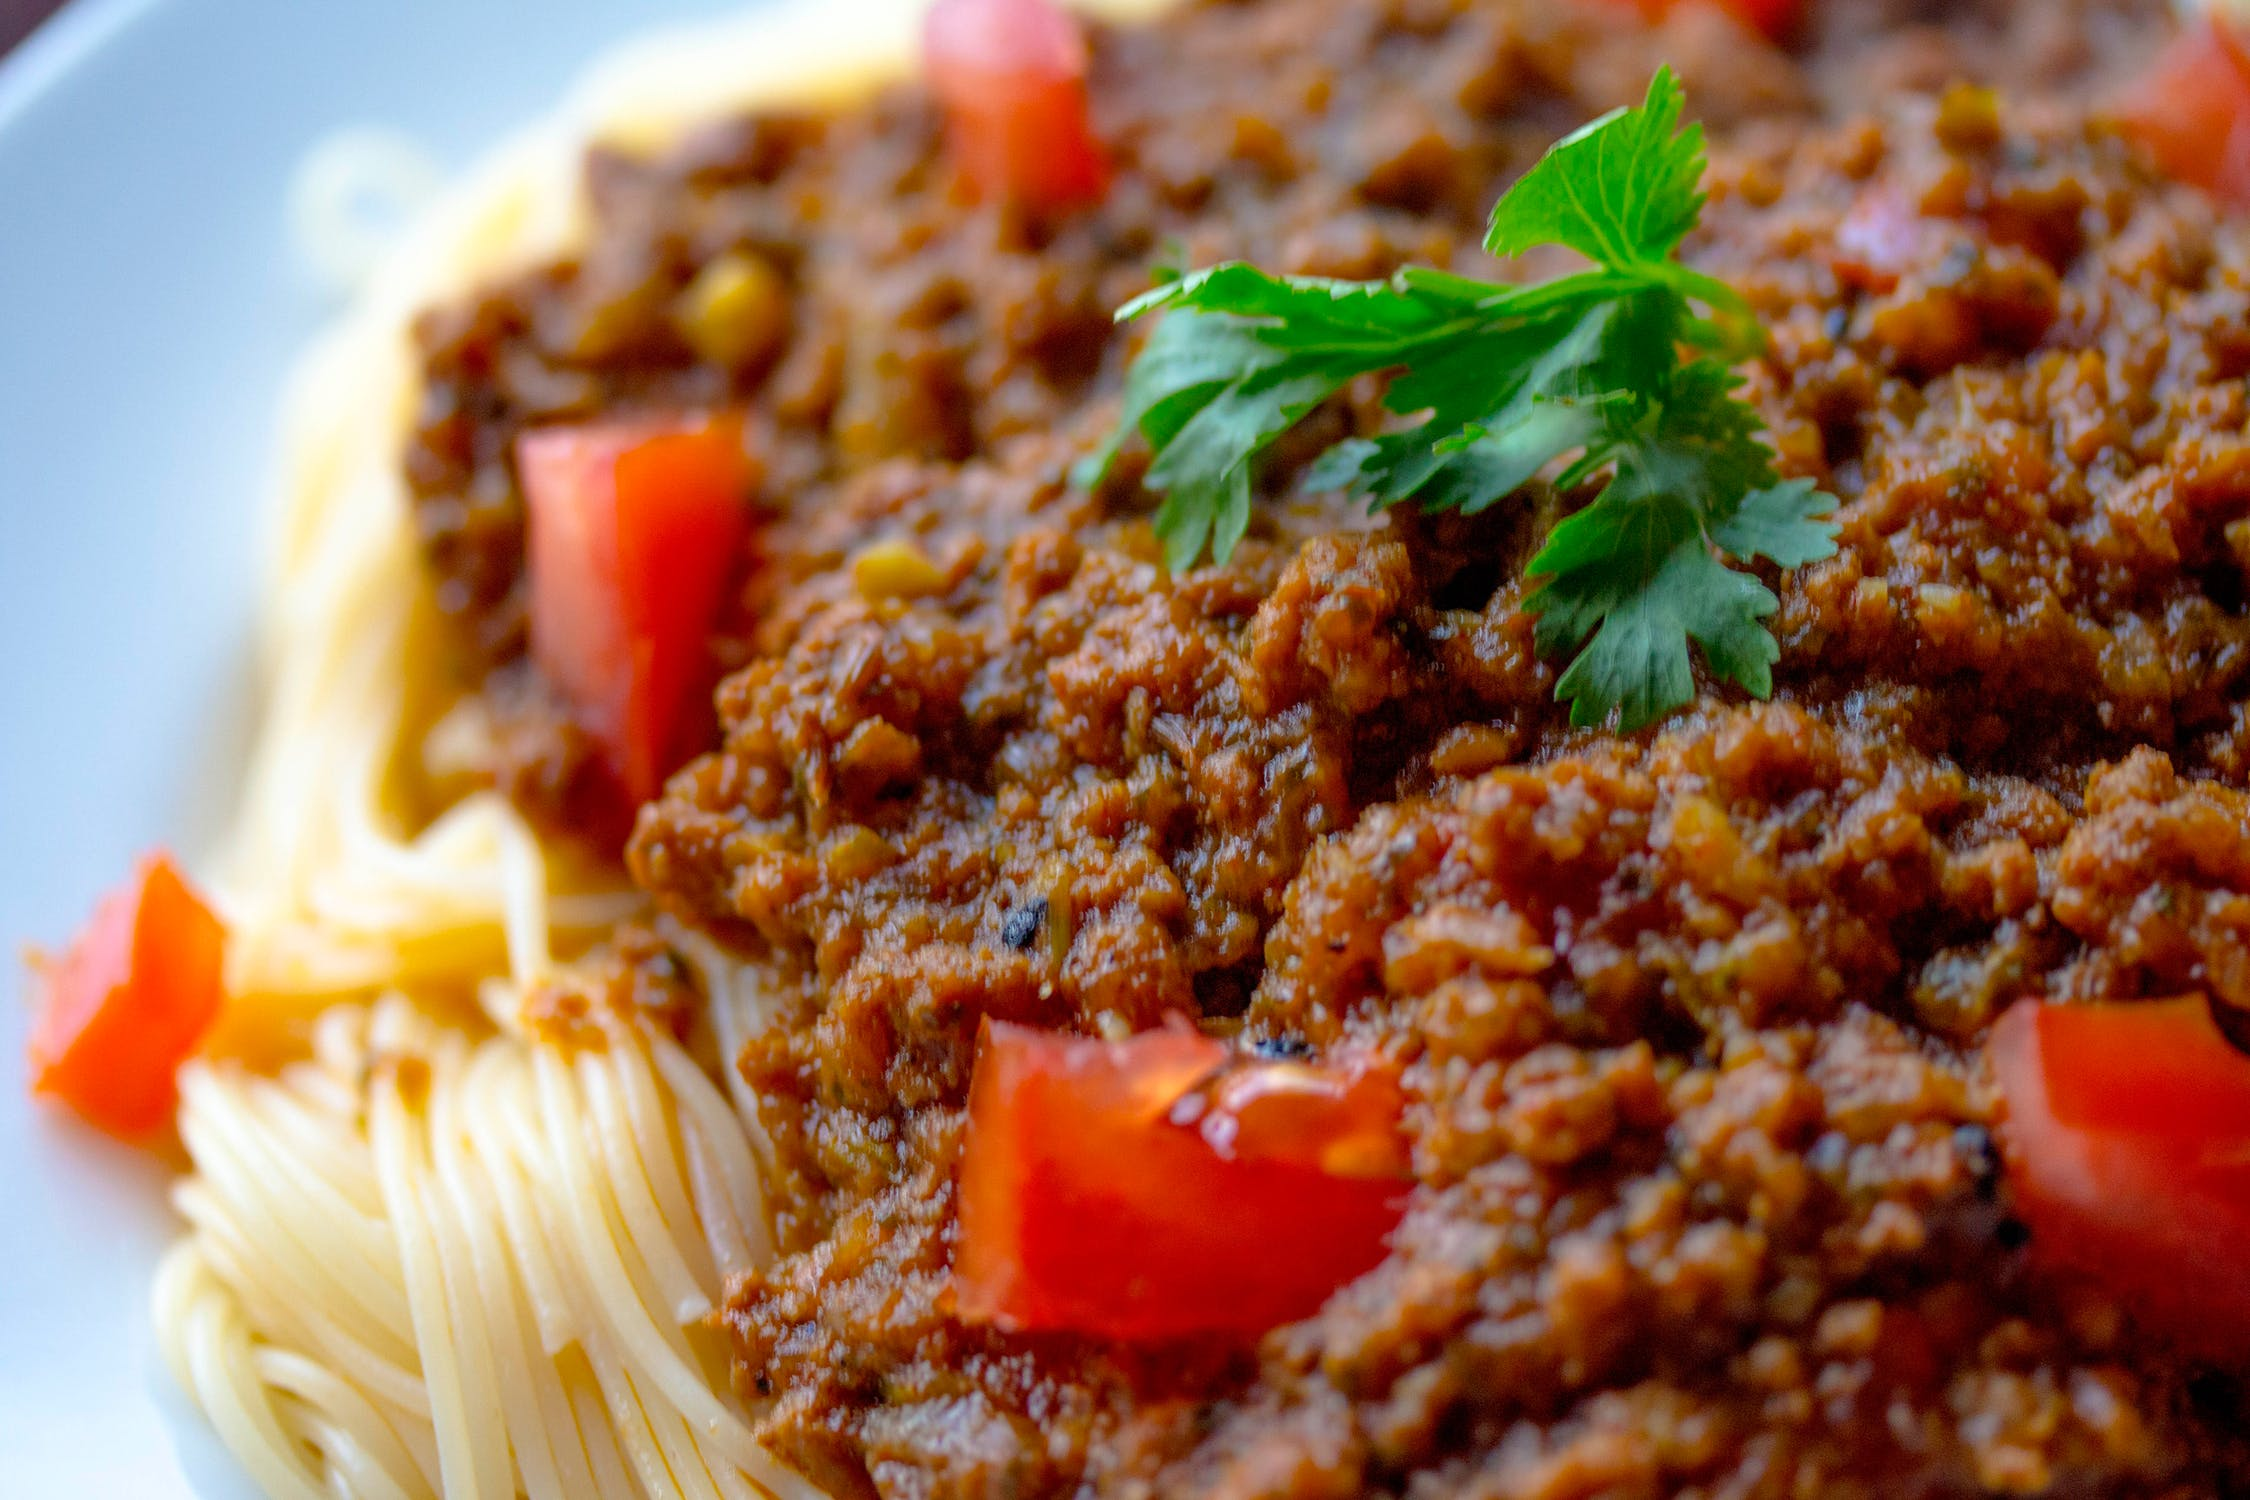 Pimped Up Spaghetti Bolognese